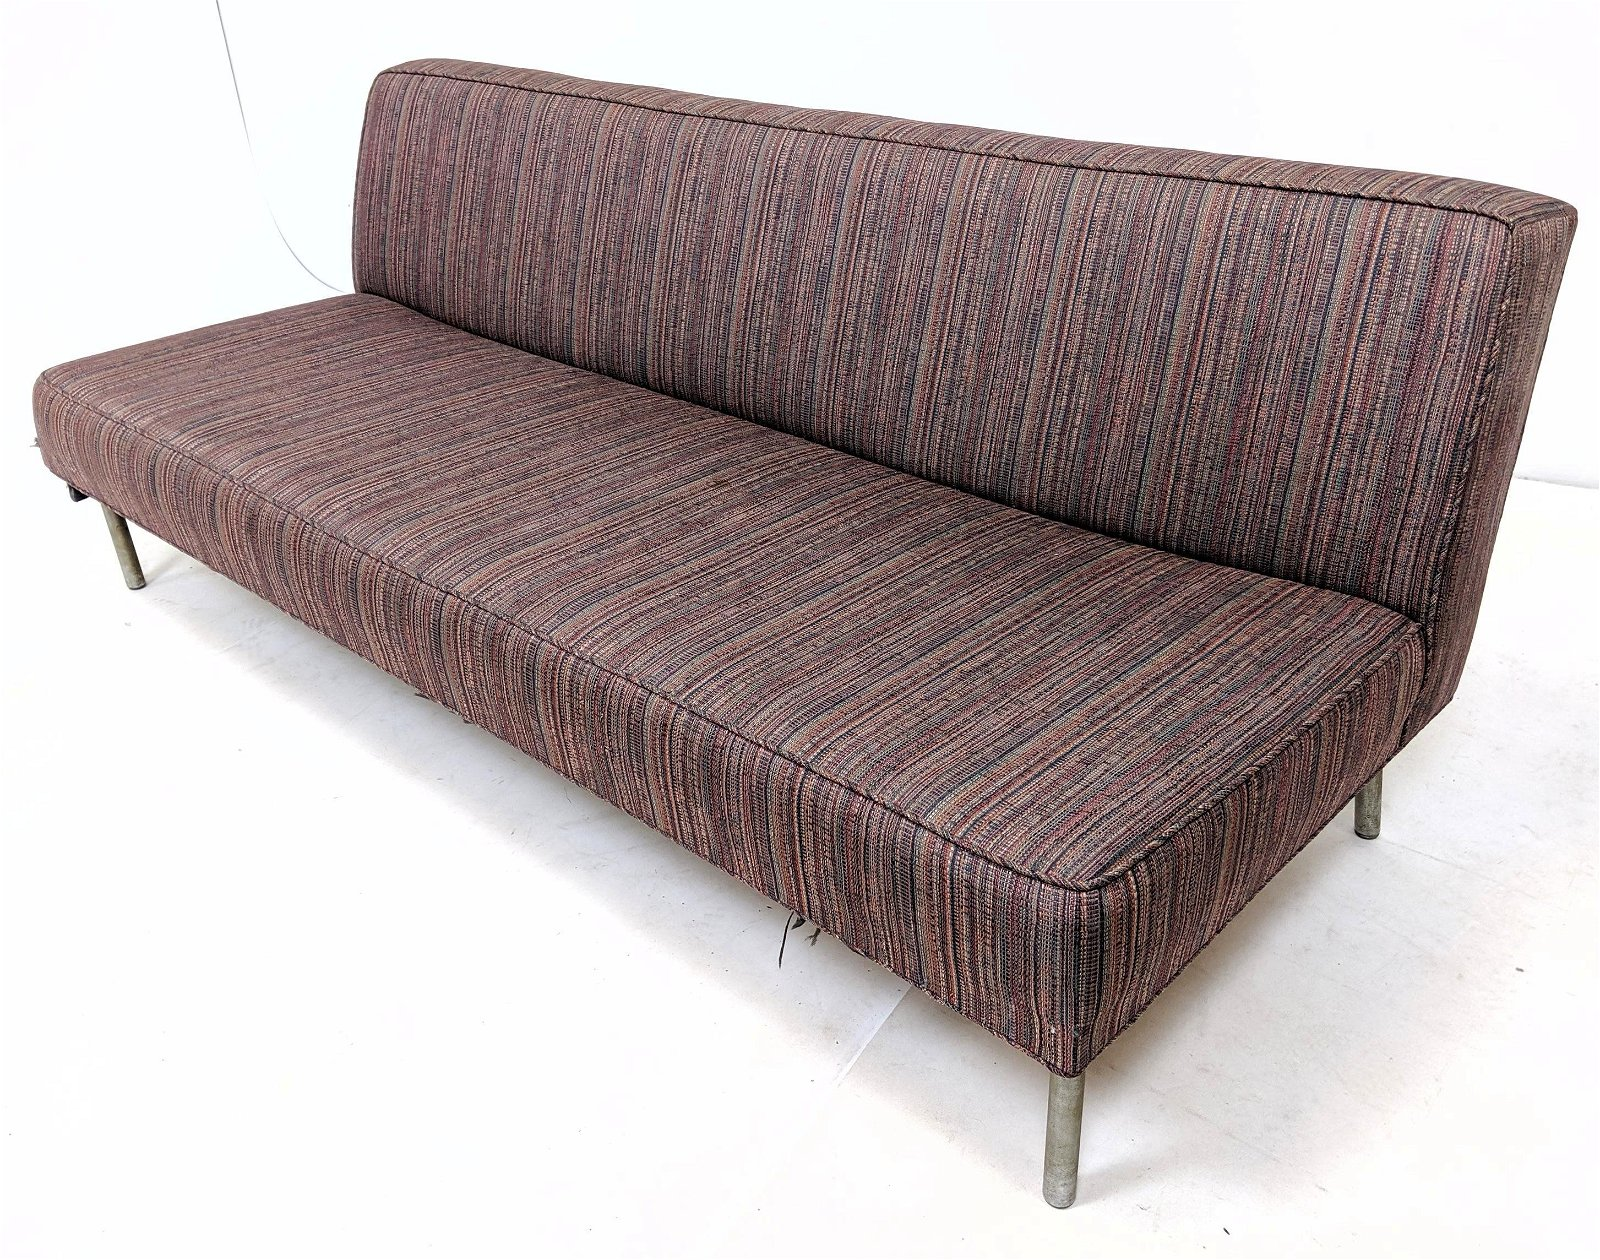 GEORGE NELSON for HERMAN MILLER Sofa Couch. Steel tube